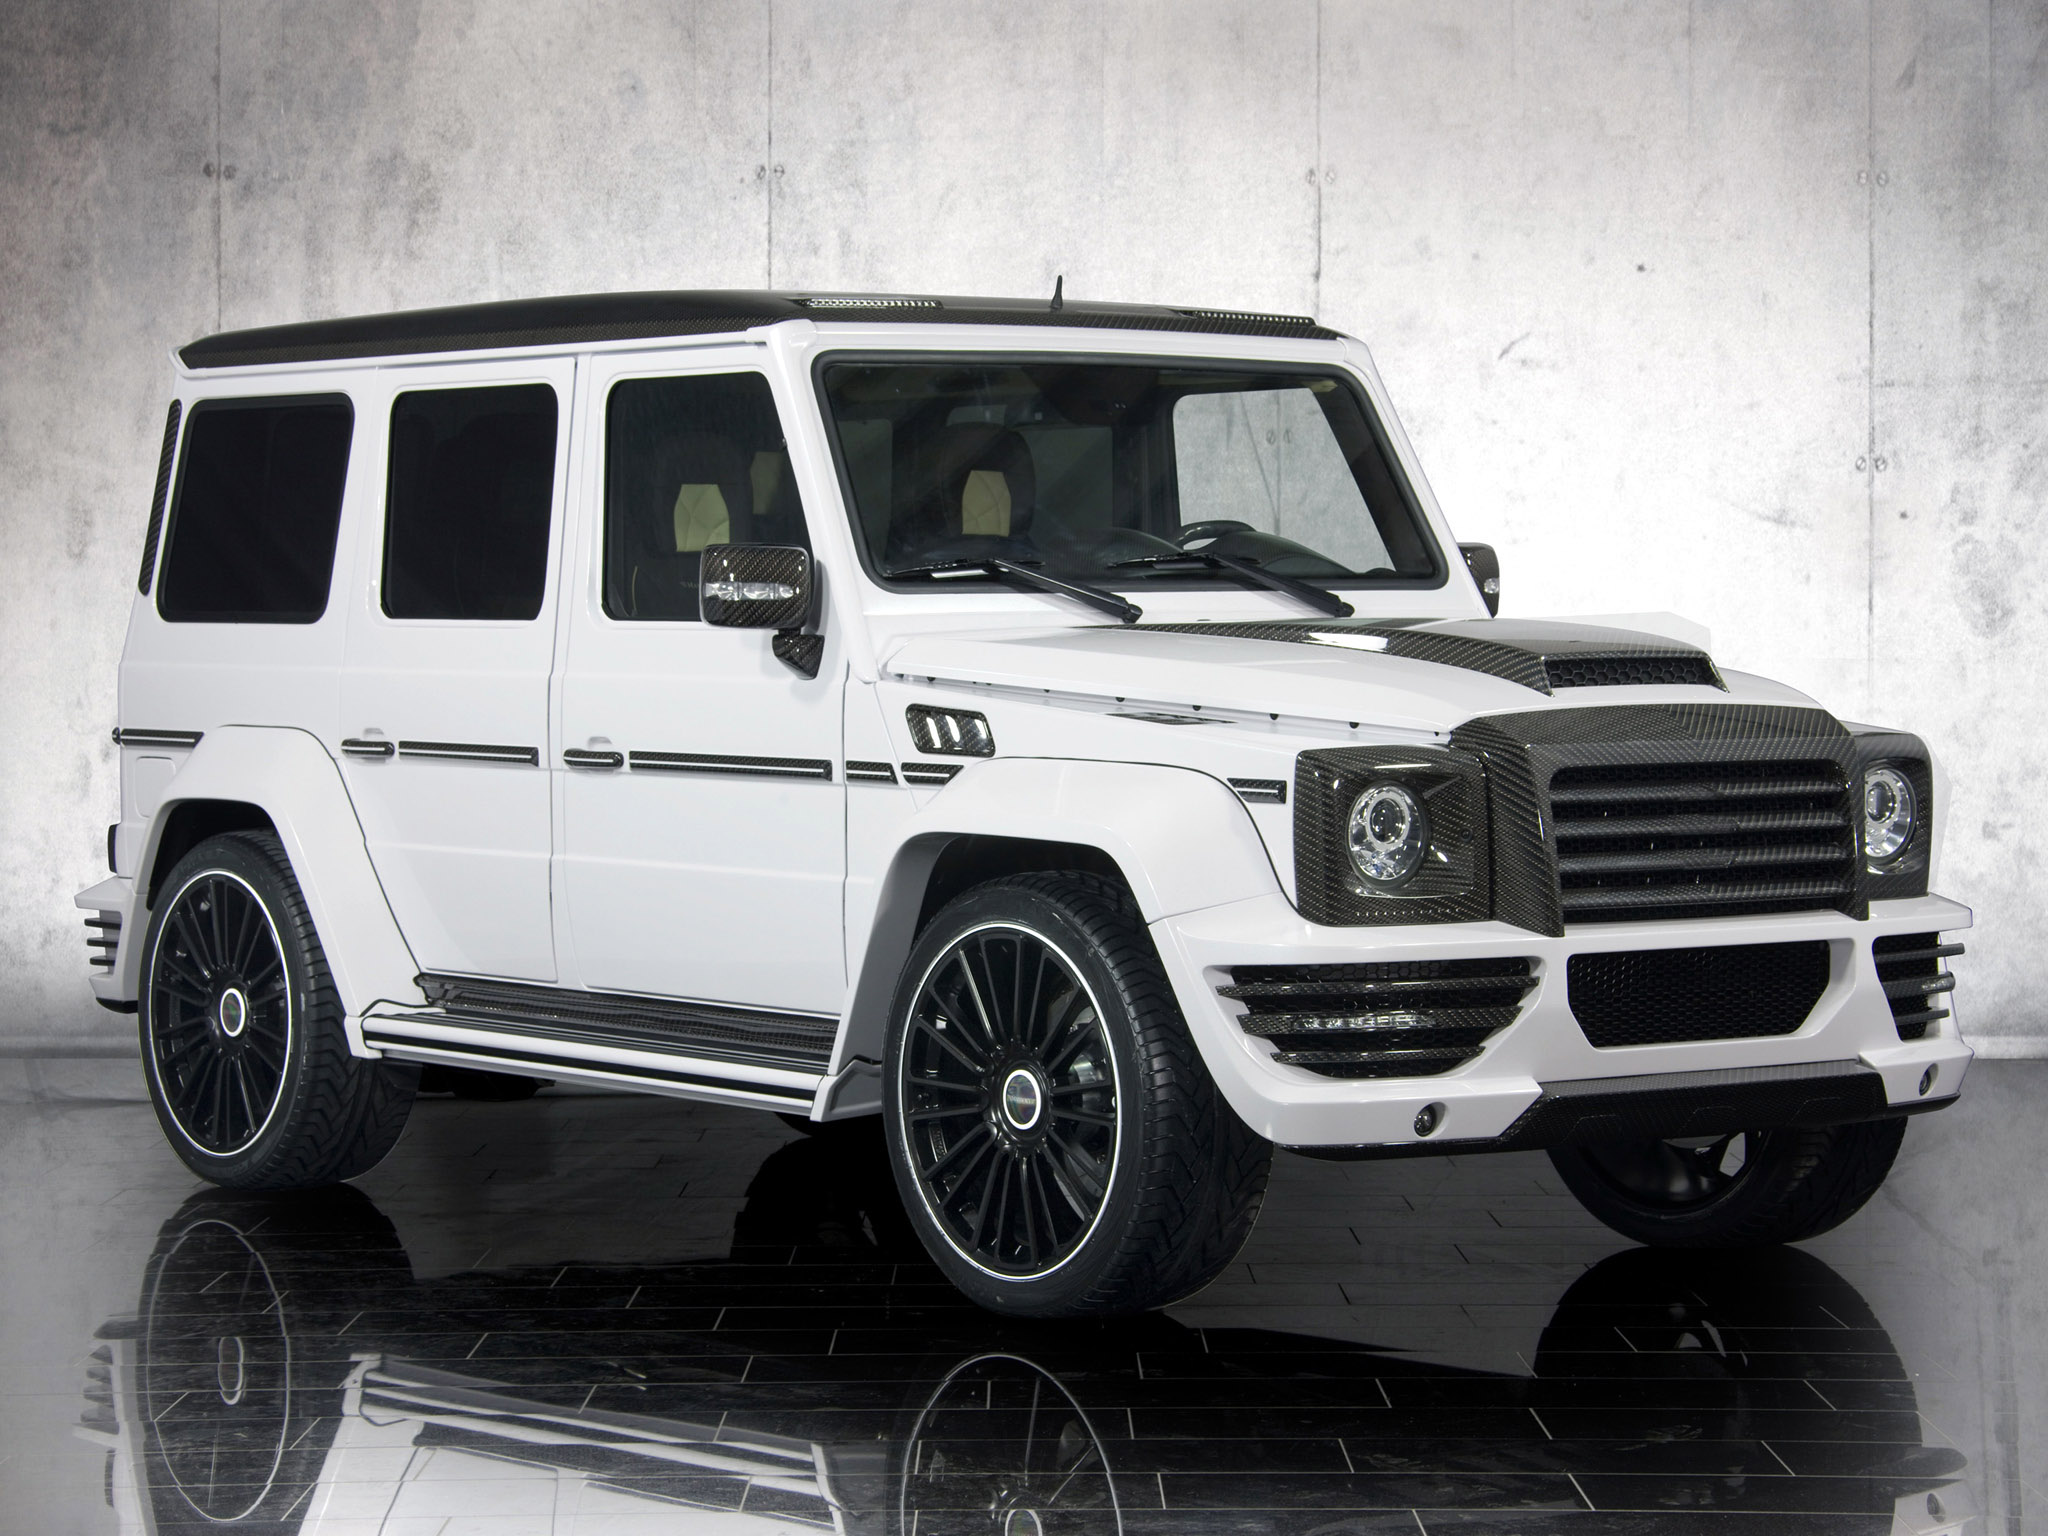 mansory mercedes g klasse g couture 2010 mansory mercedes. Black Bedroom Furniture Sets. Home Design Ideas